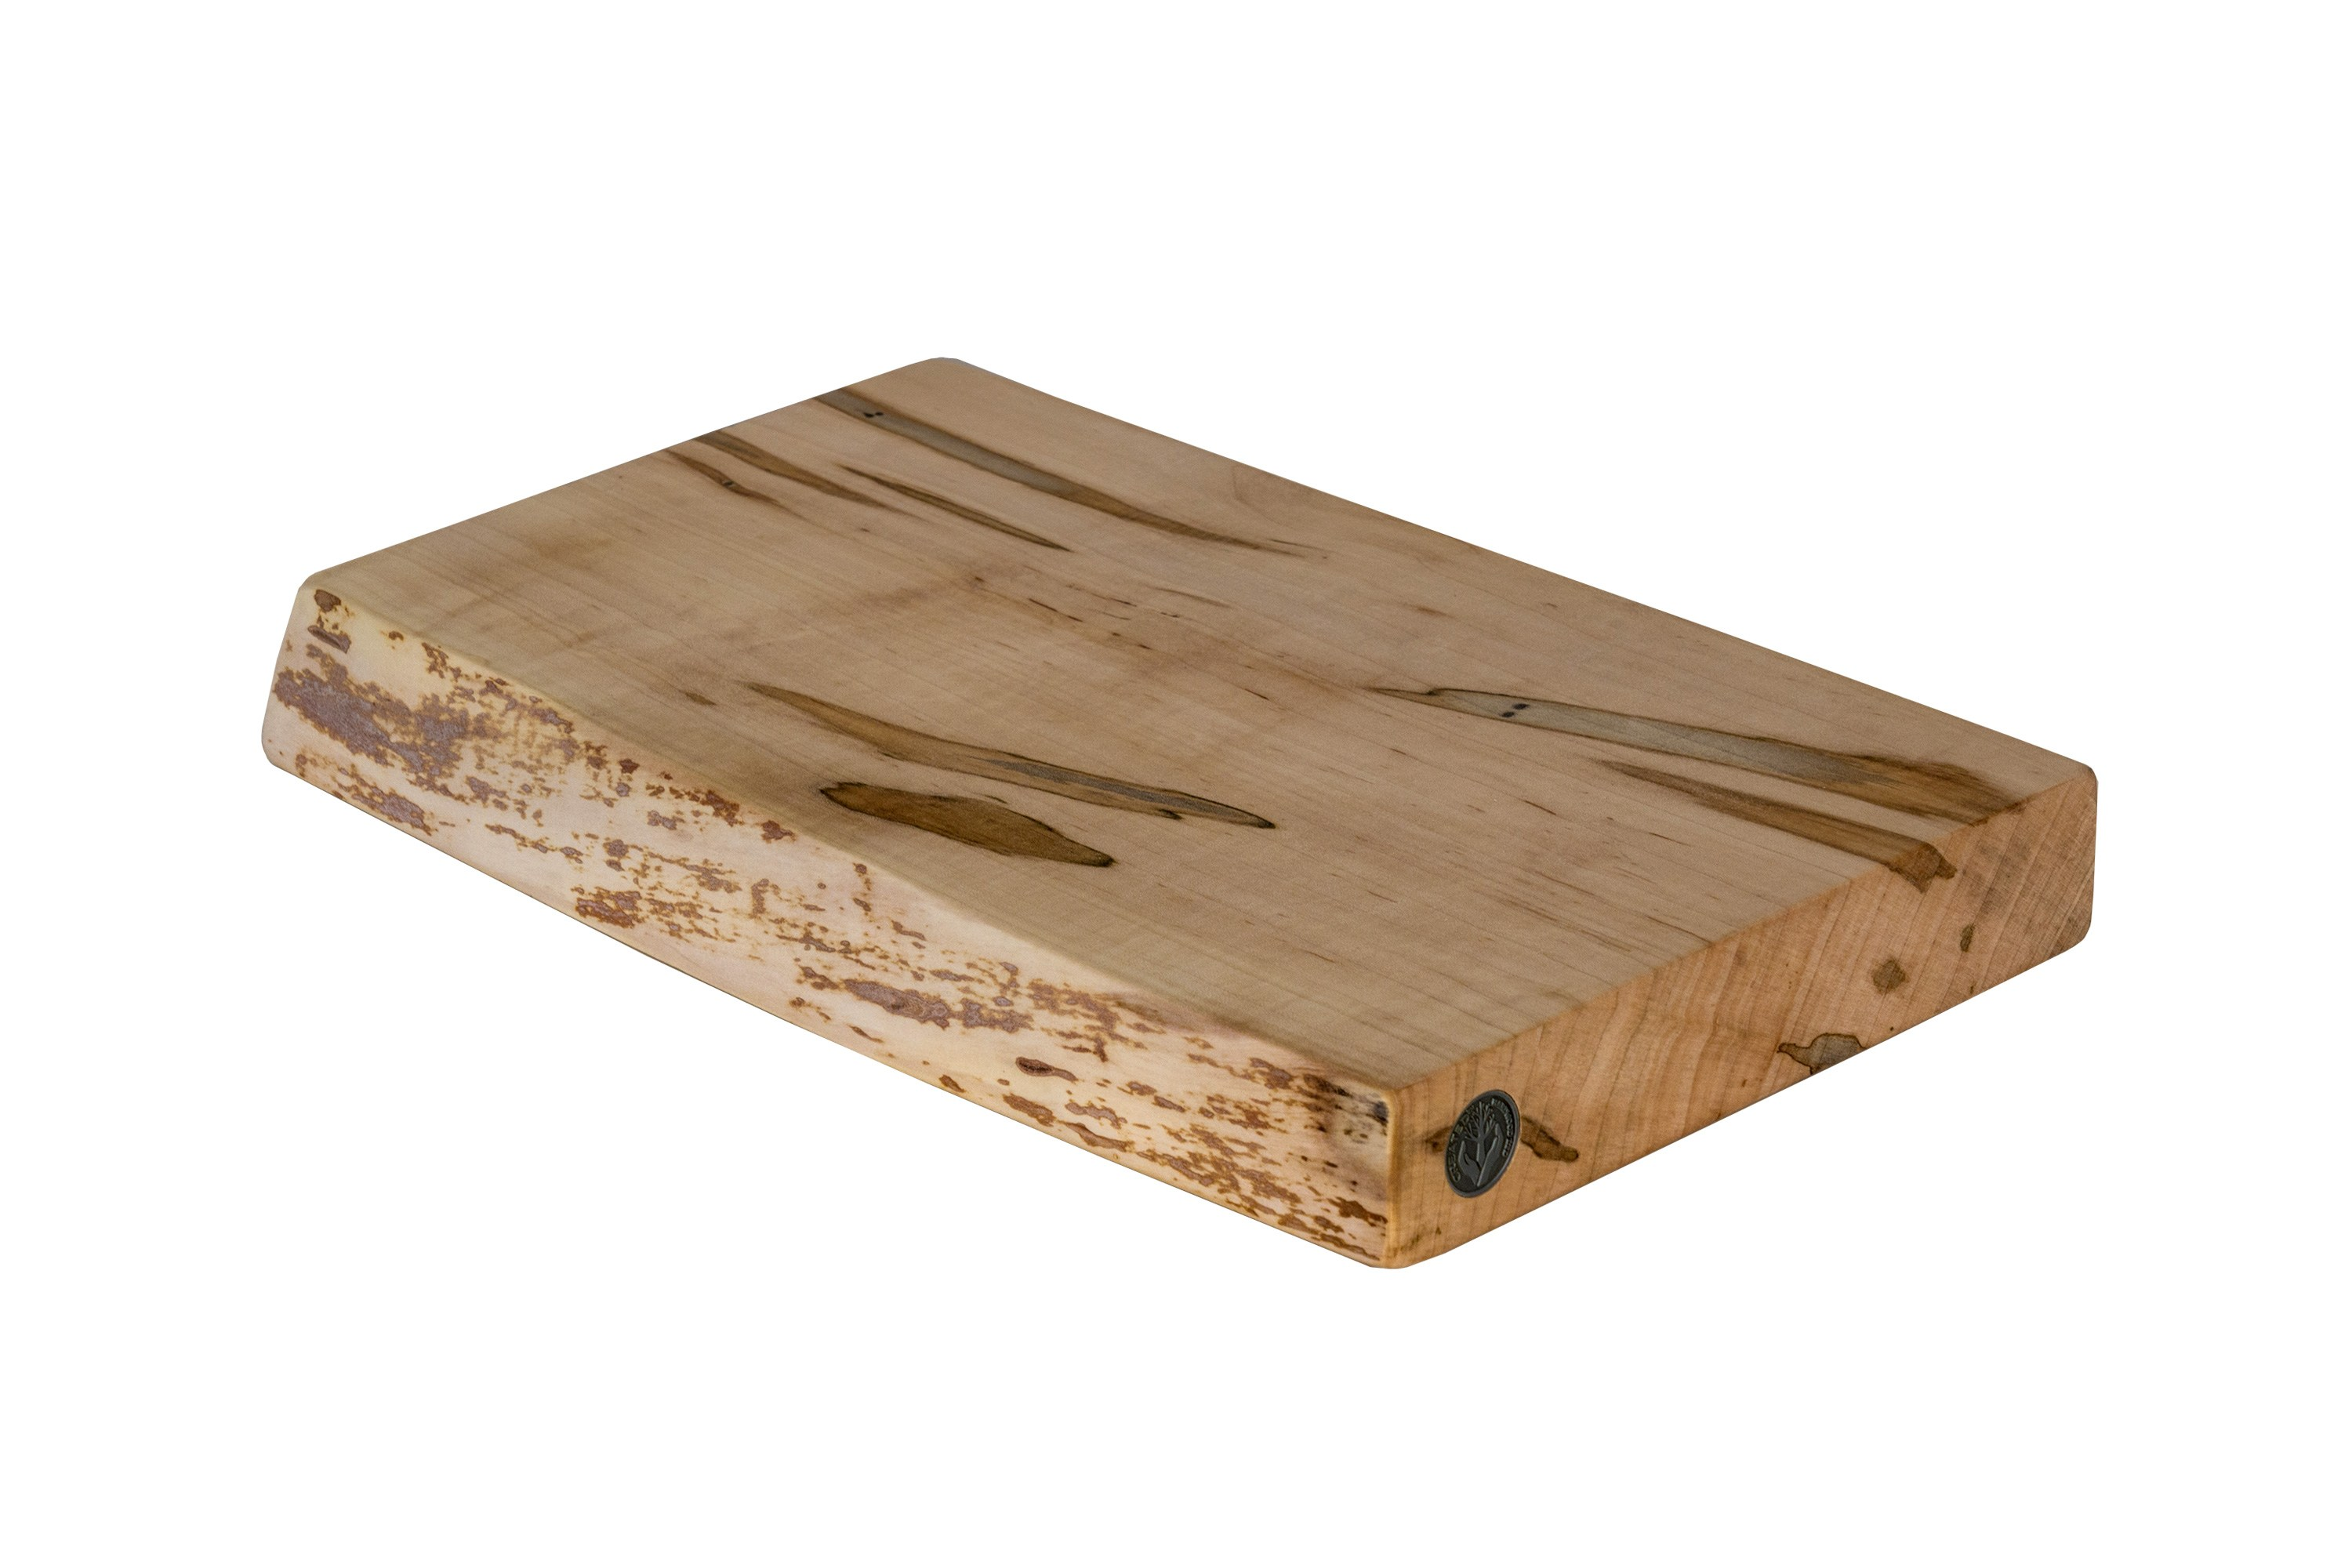 Live Edge Maple Cutting Board #130- 16